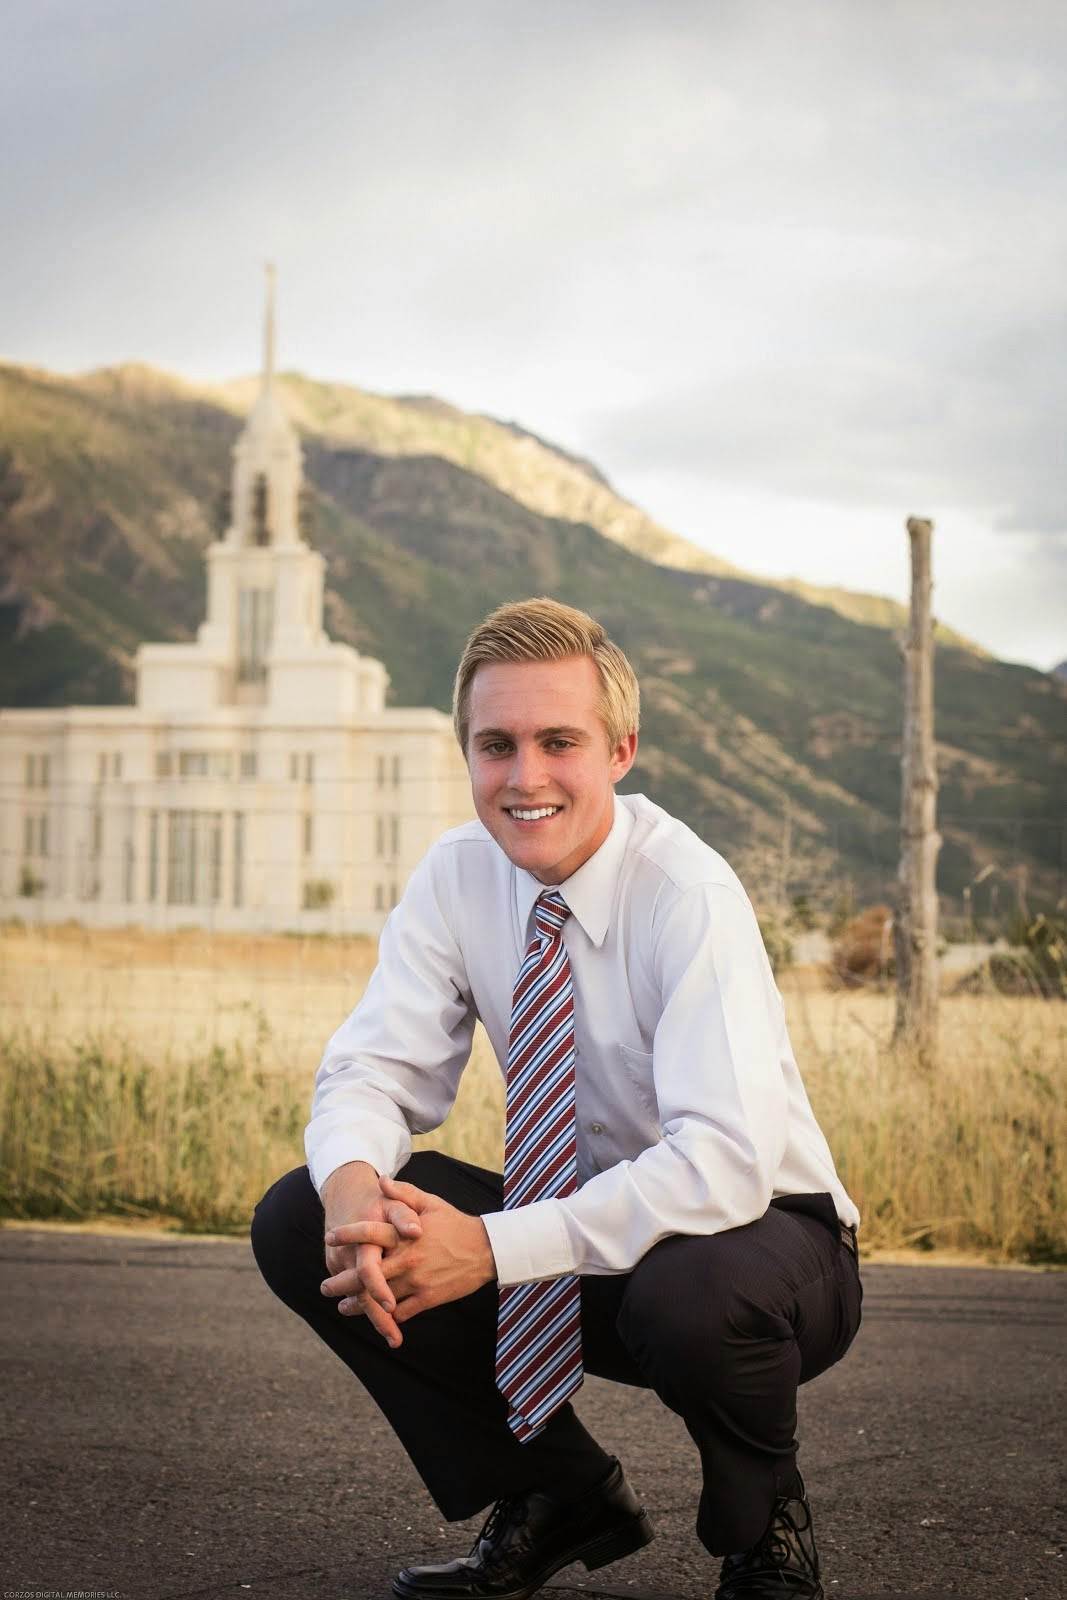 Elder Simmons